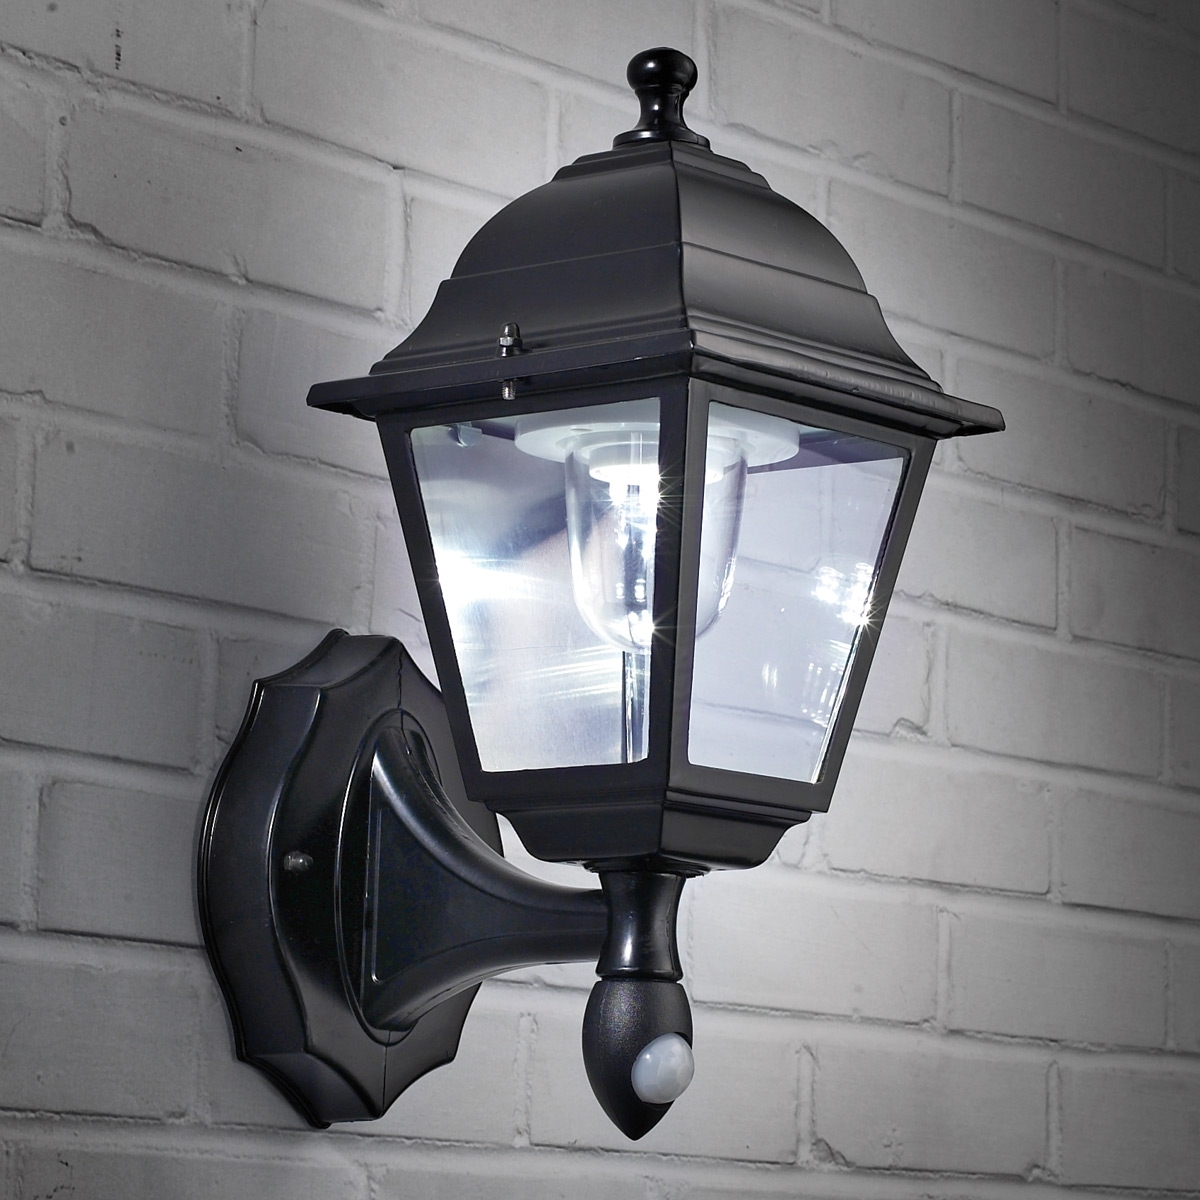 Outdoor Lanterns With Remote Control For Most Recently Released Indoor Light : Luxury Prime Indoor/outdoor Lighting Wireless Remote (View 5 of 20)